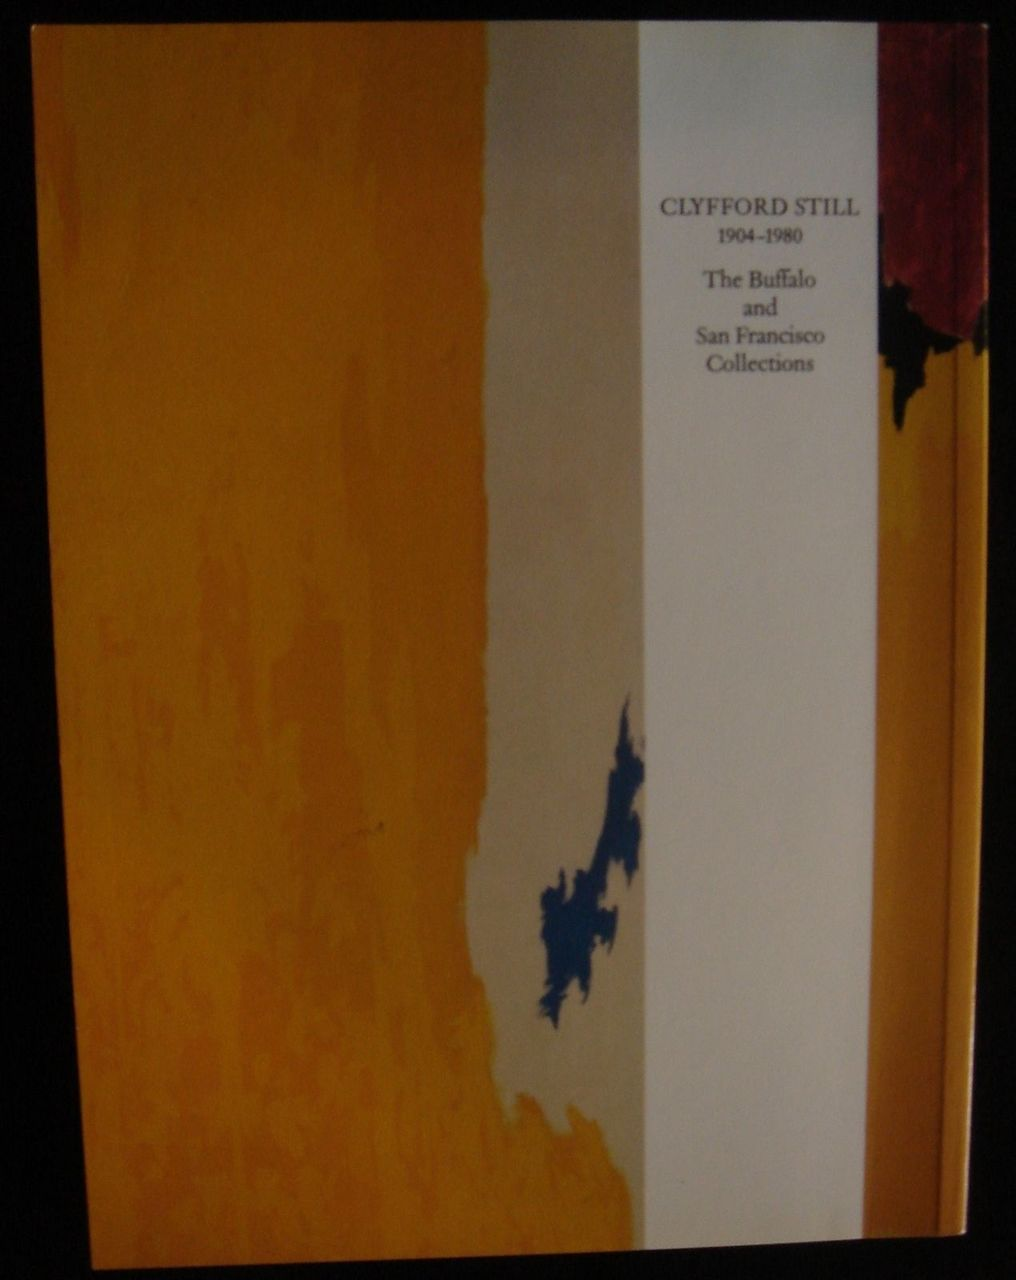 CLYFFORD STILL - The Buffalo and San Francisco Collections, ed by Thomas Kellein - 1992